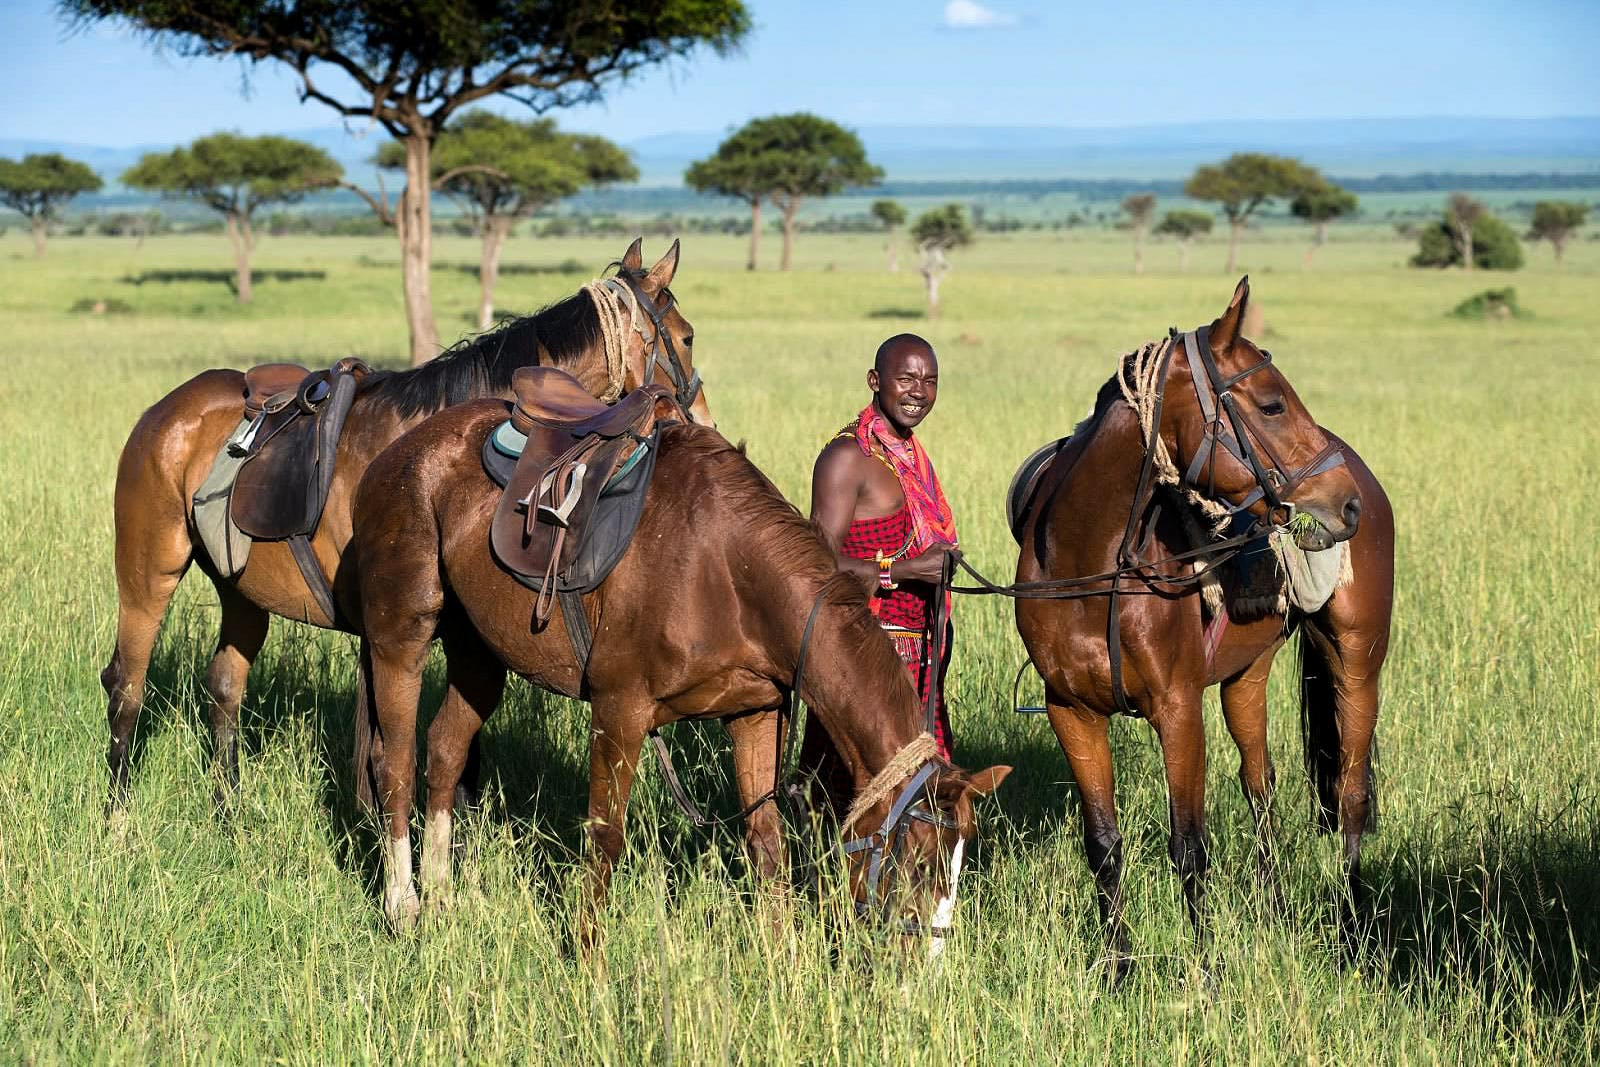 Masai Mara - Alternative ways to experience Africa